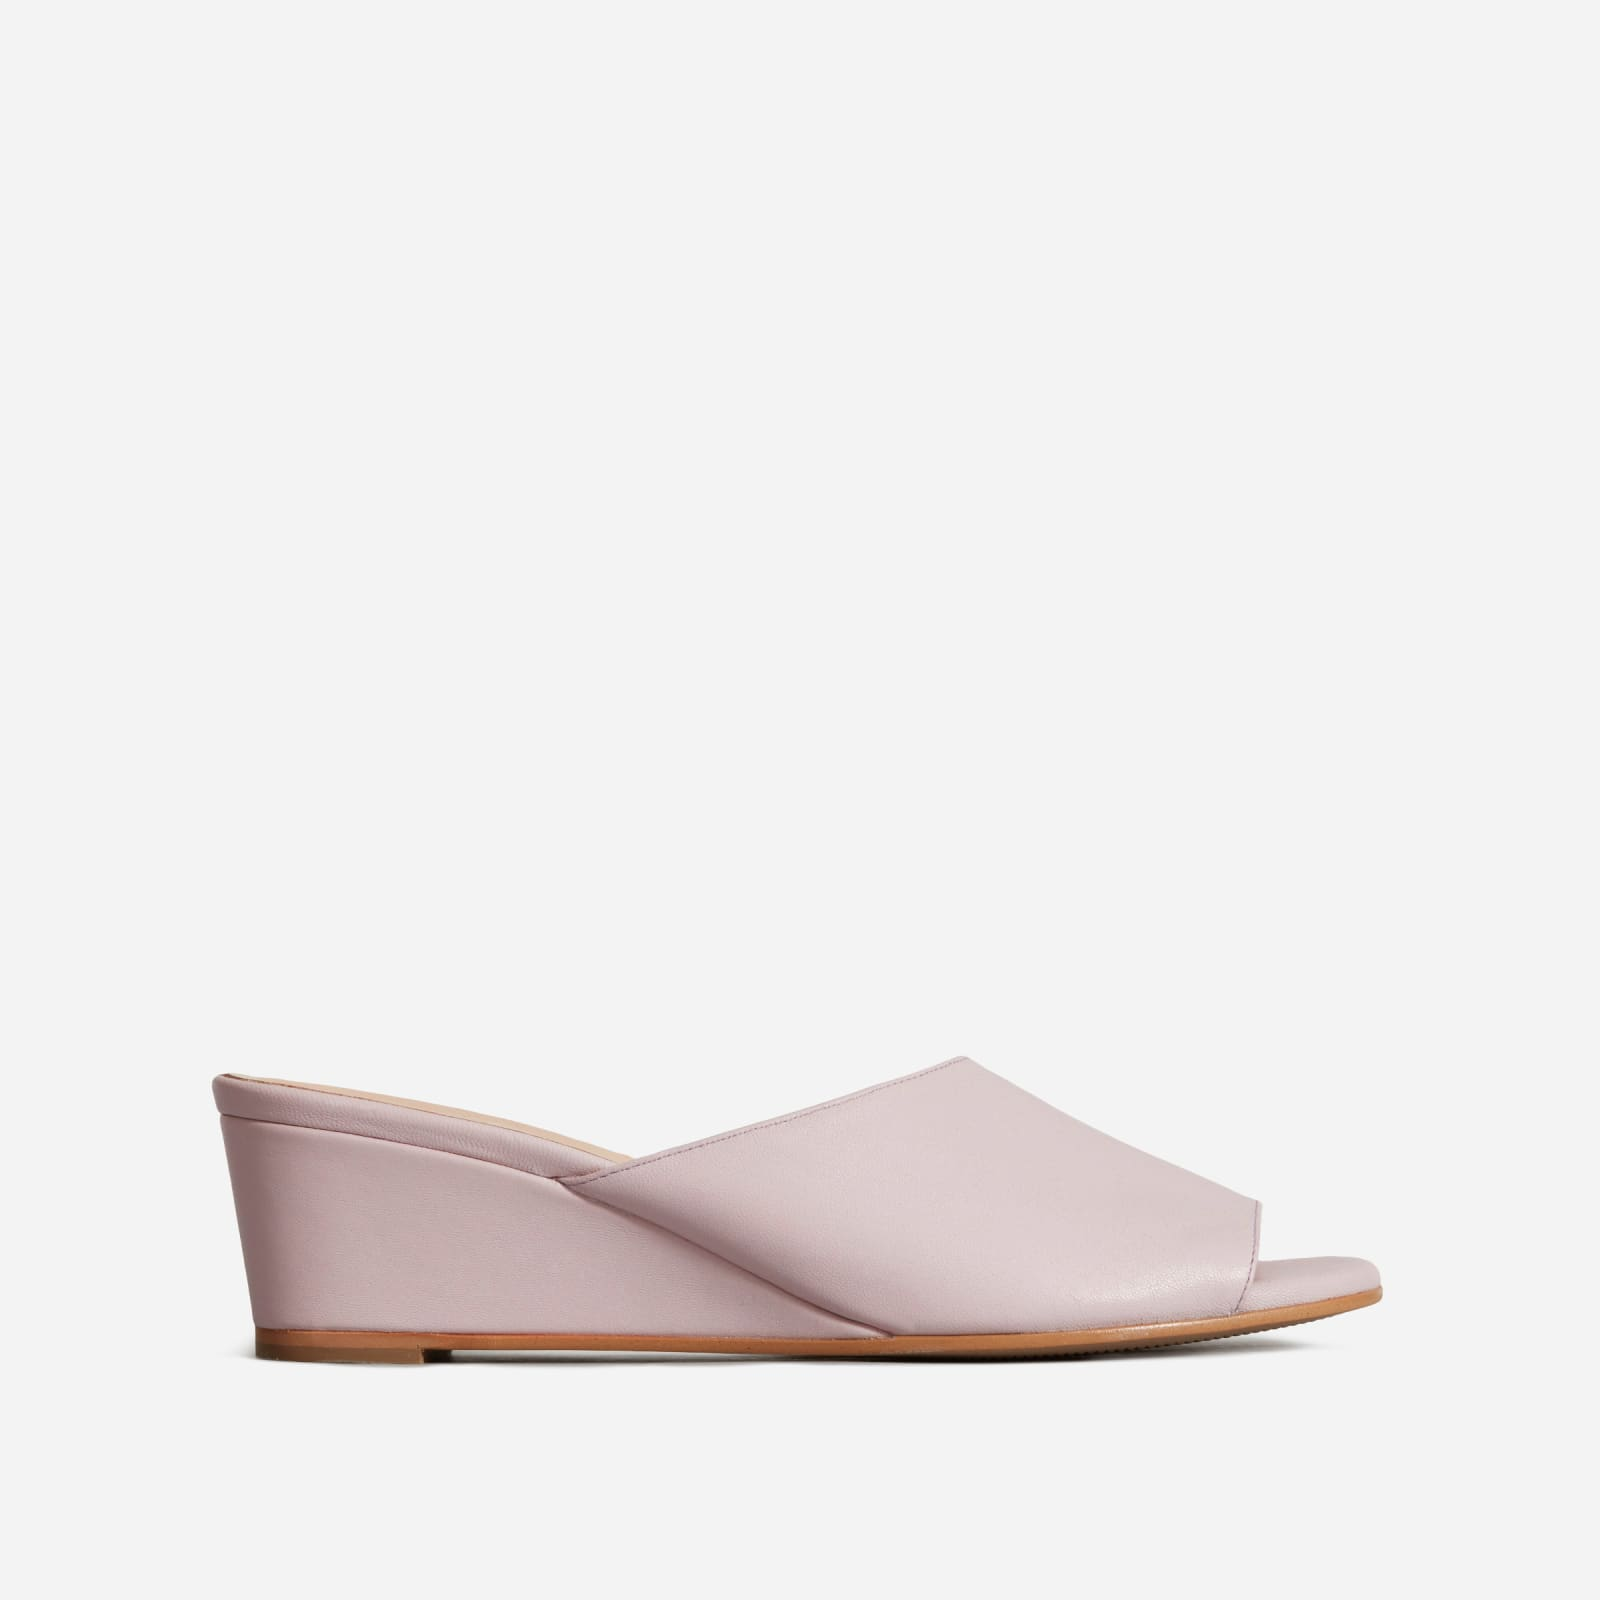 wedge by everlane in lavender, size 8.5